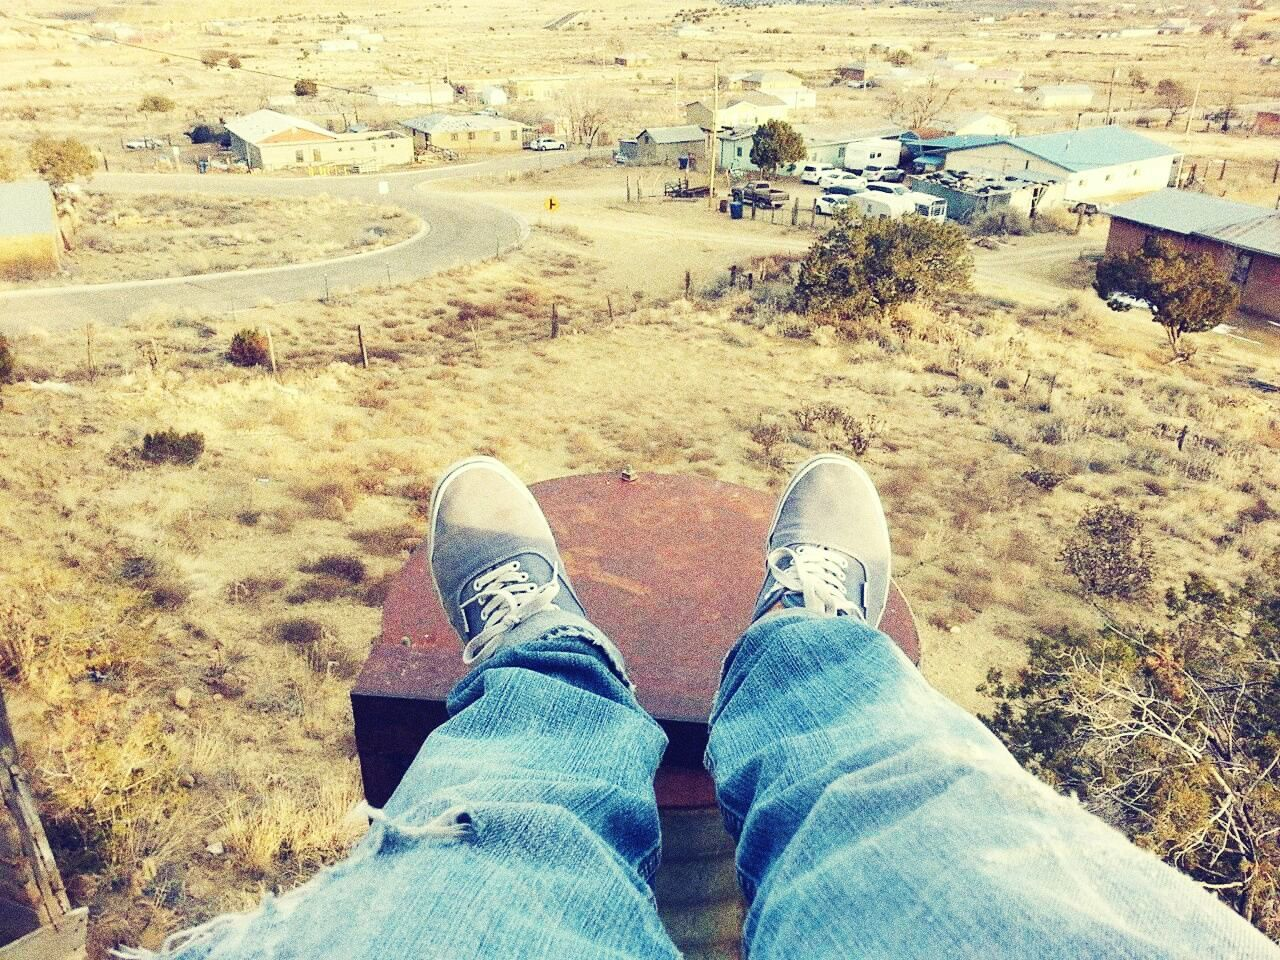 personal perspective, shoe, one person, real people, human leg, low section, standing, human body part, high angle view, men, day, lifestyles, outdoors, landscape, nature, grass, one man only, people